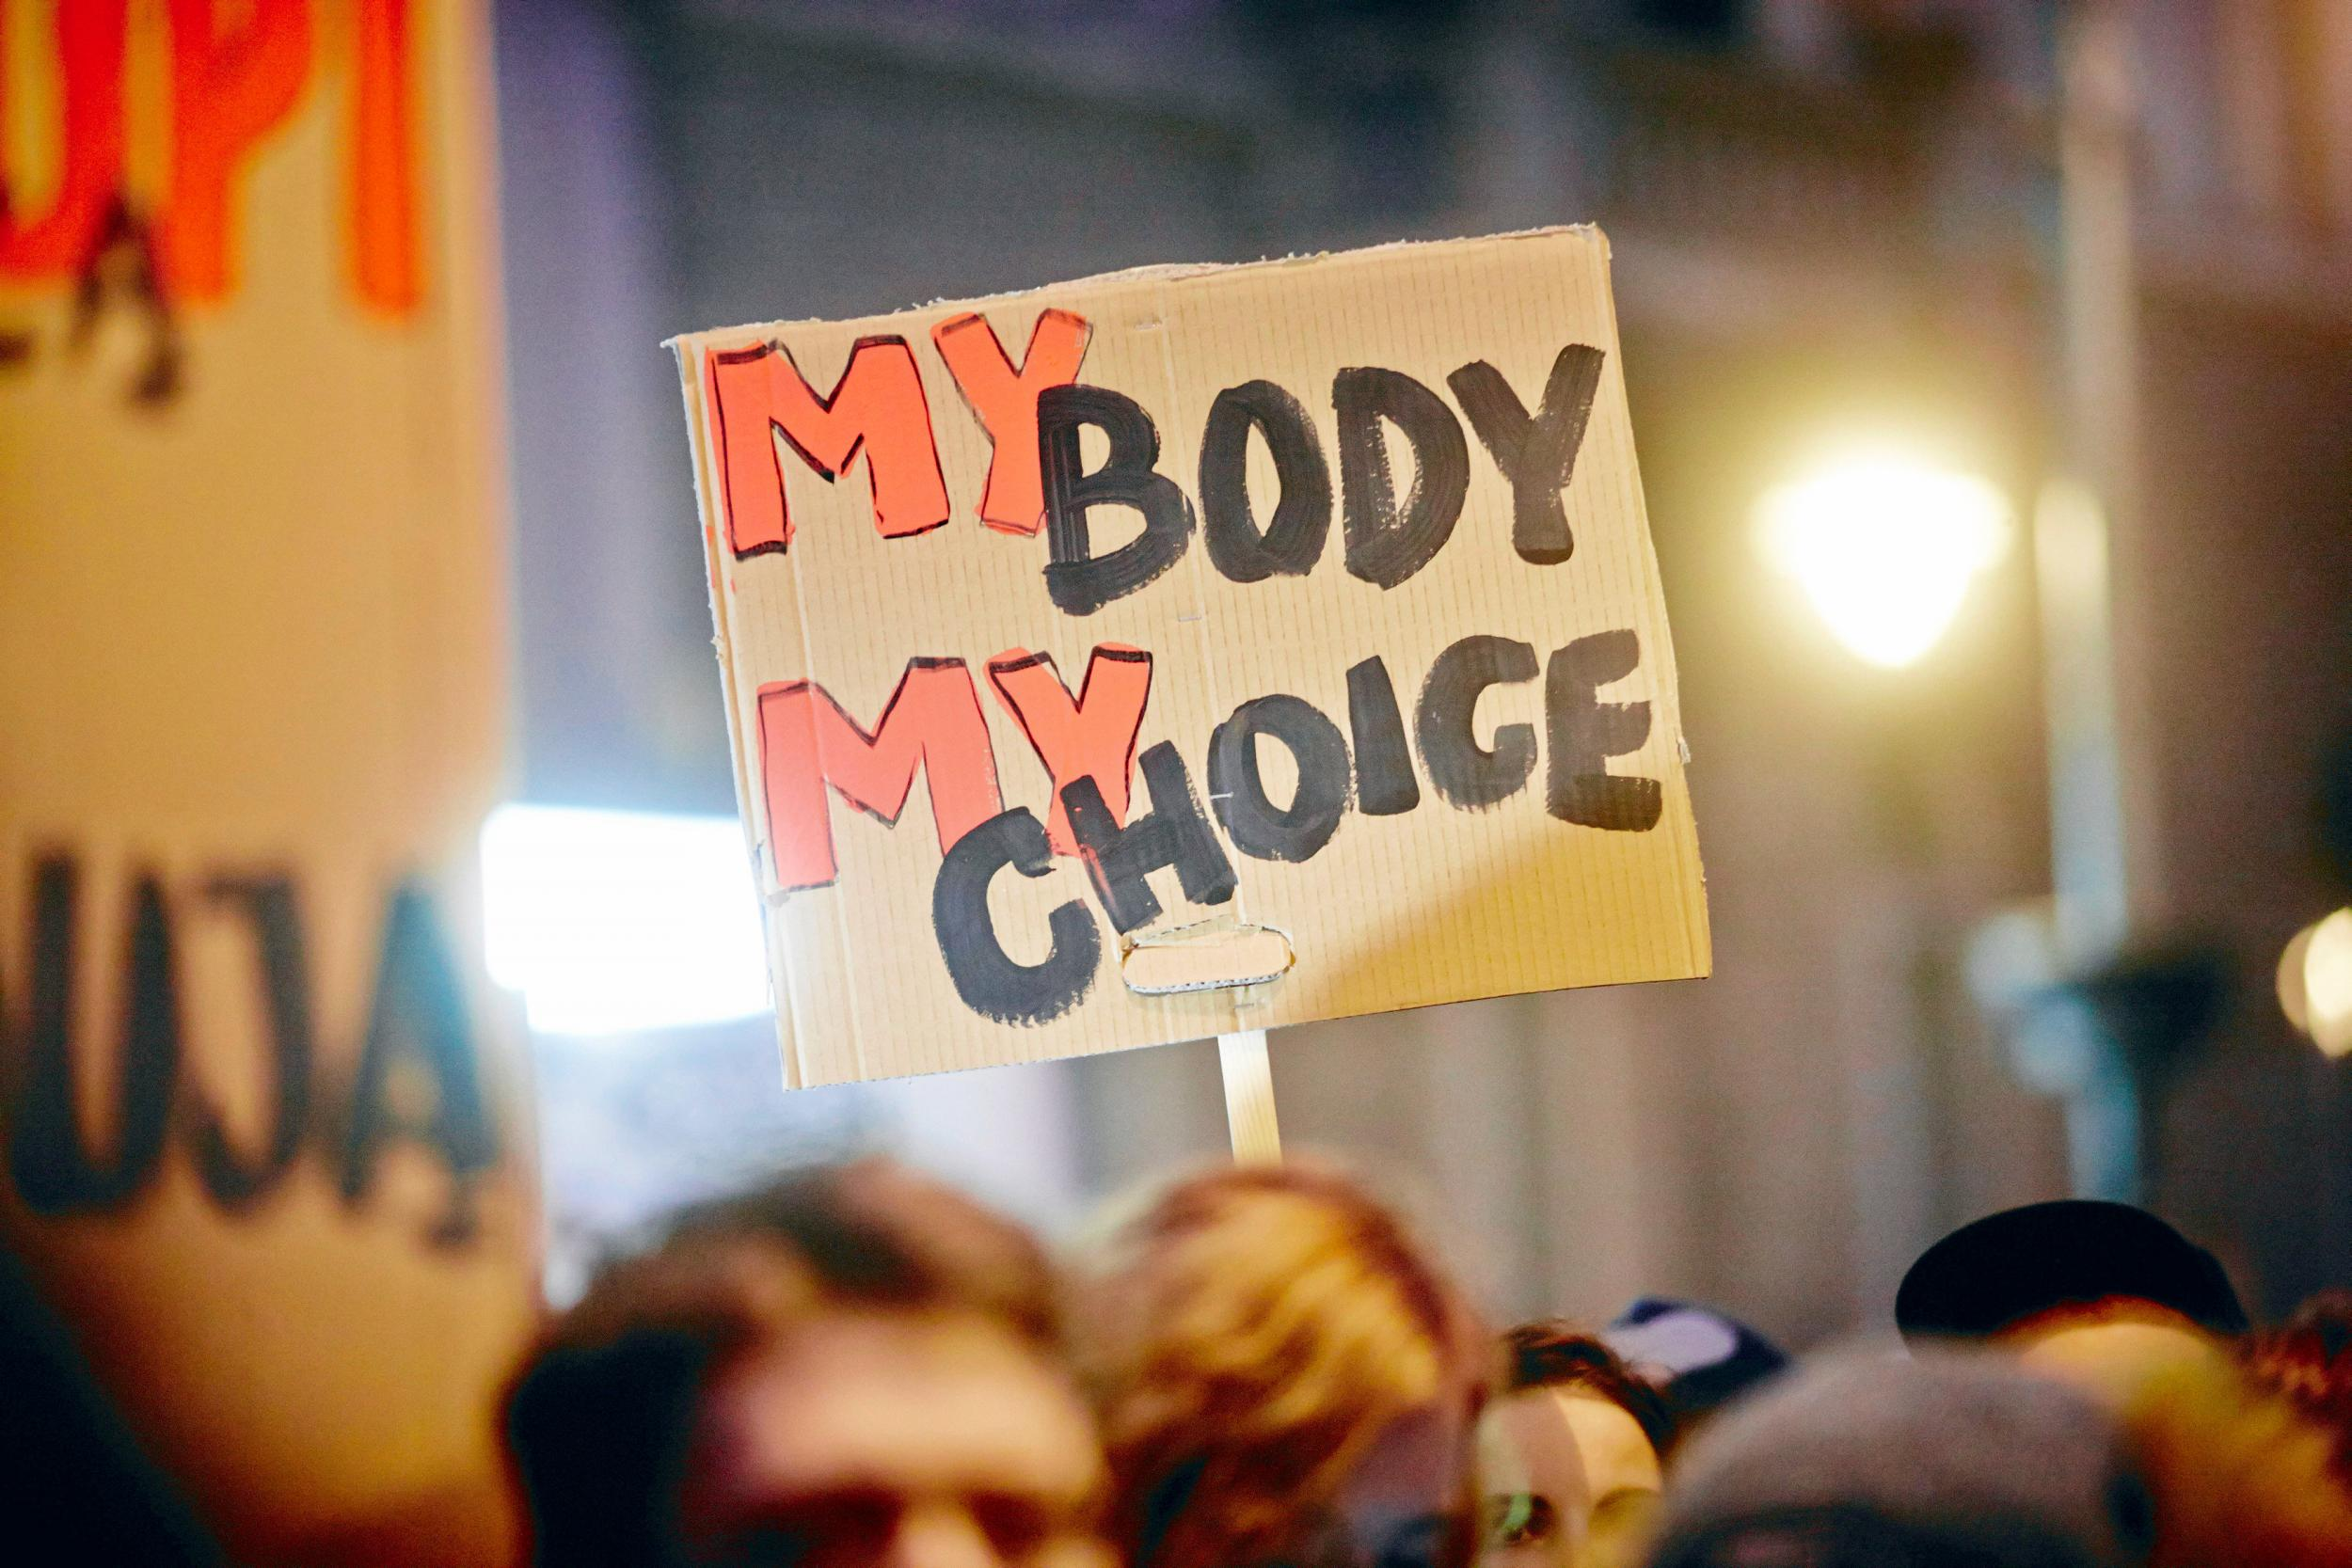 I had to risk miscarrying in a taxi after taking an abortion